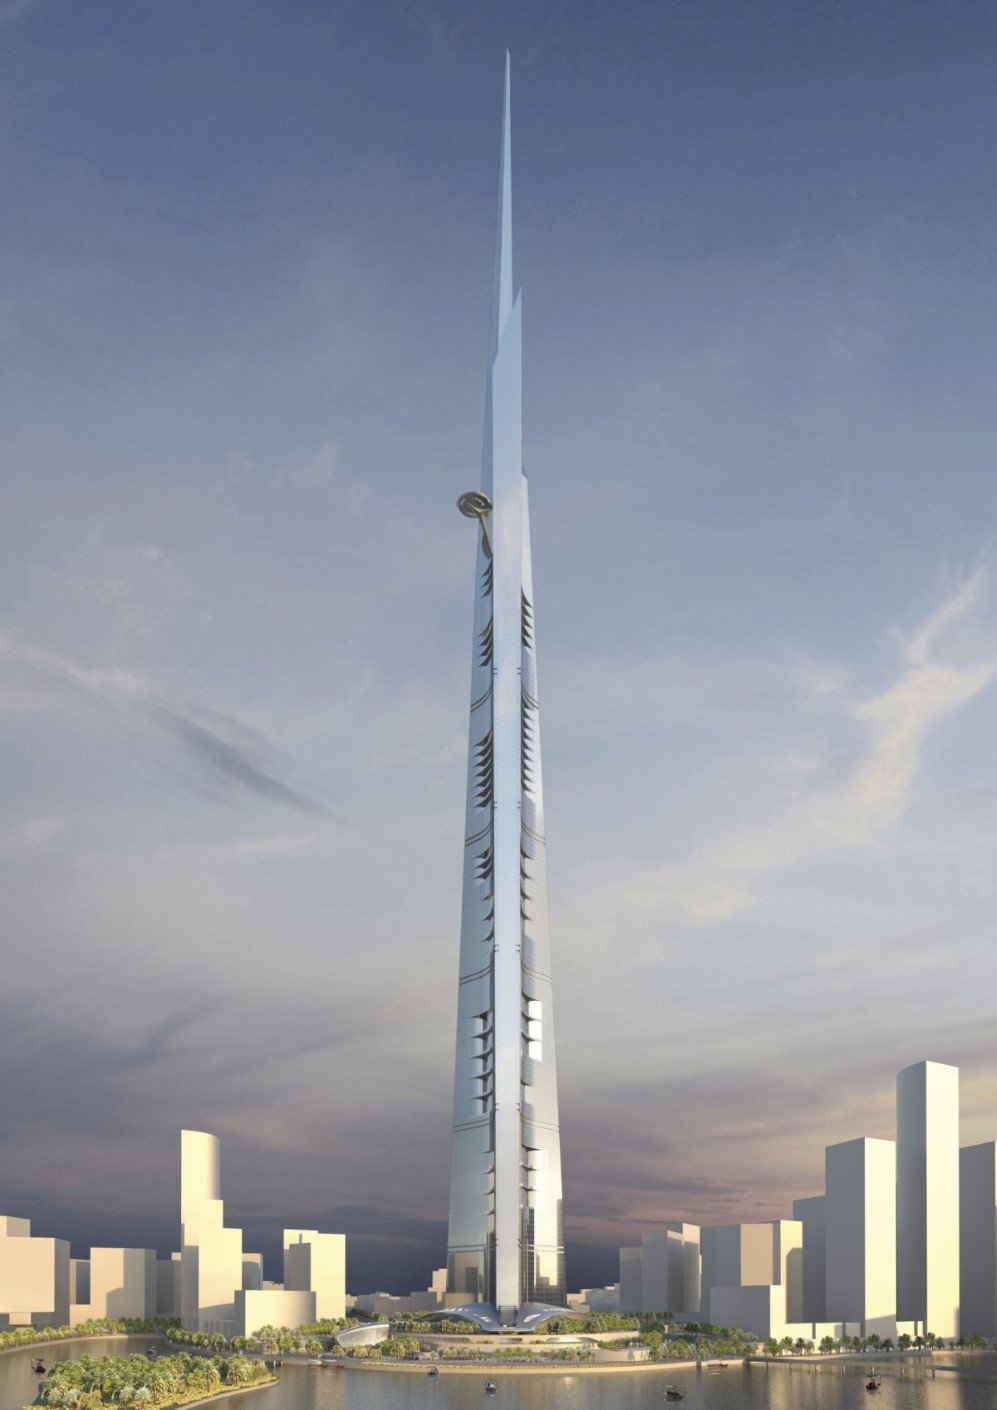 1. Kingdom Tower, Jeddah, Saudi Arabia